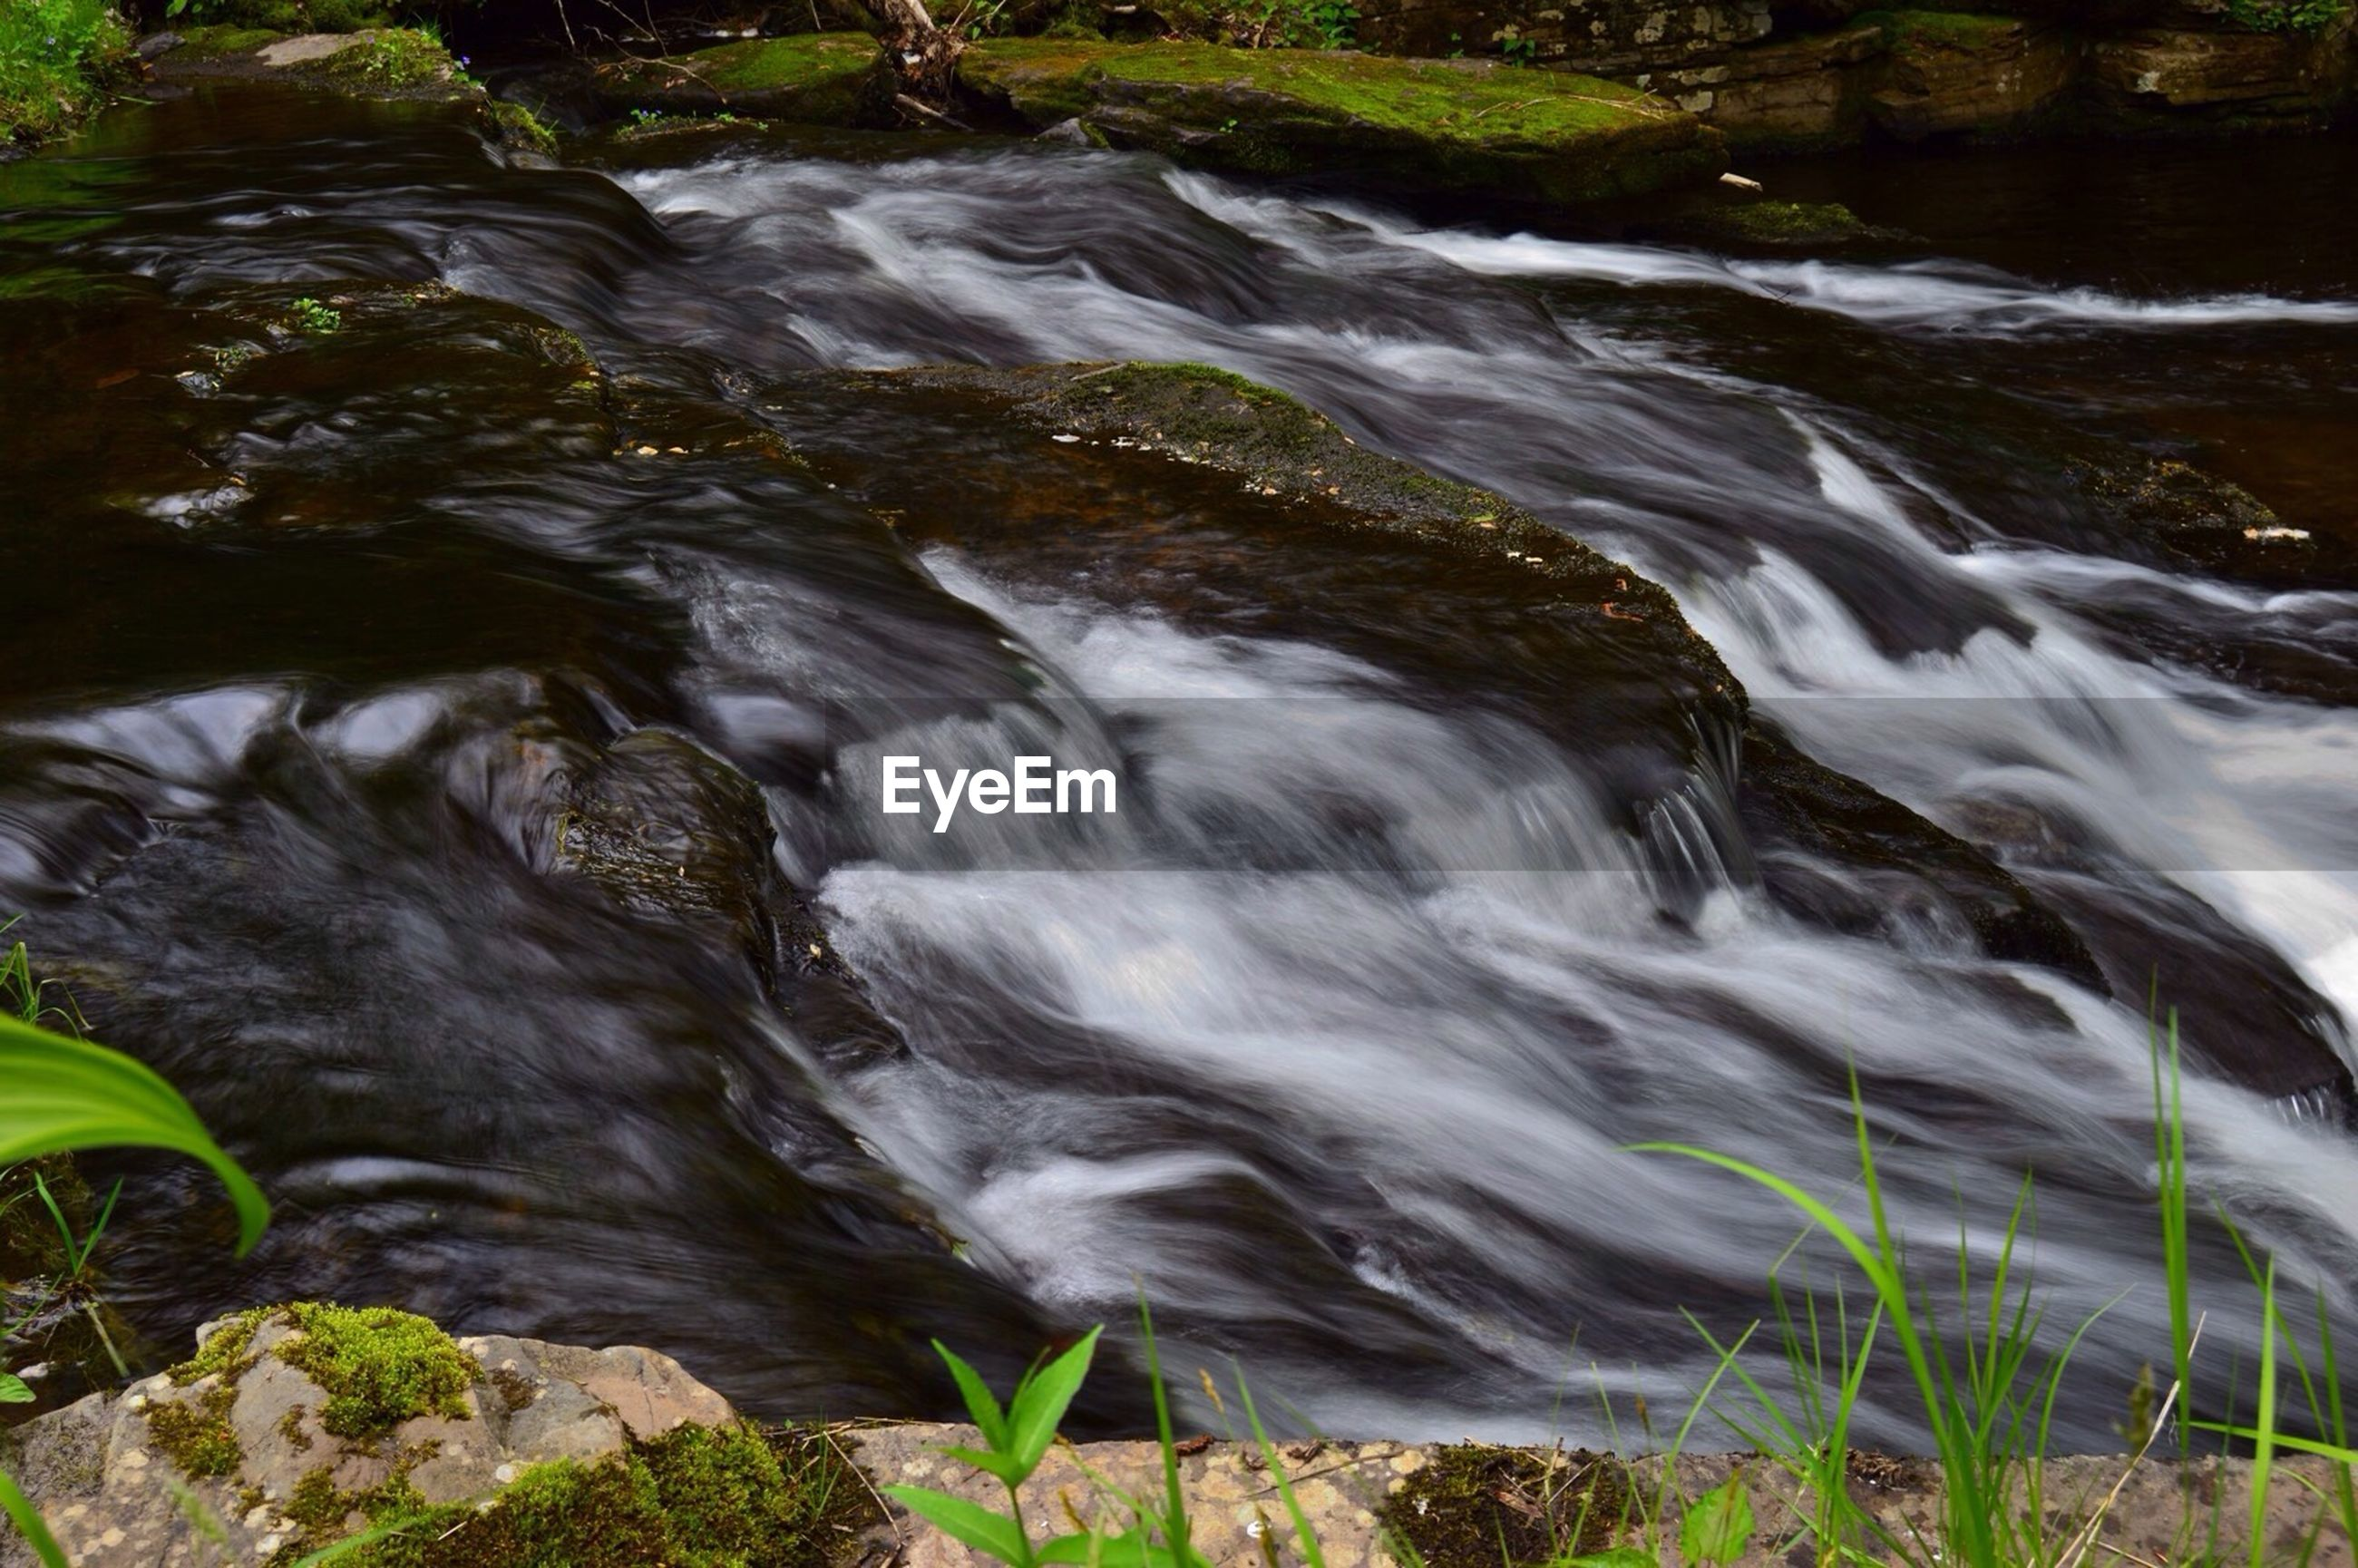 water, motion, flowing water, waterfall, long exposure, flowing, forest, nature, beauty in nature, stream, rock - object, blurred motion, scenics, surf, river, plant, day, outdoors, no people, high angle view